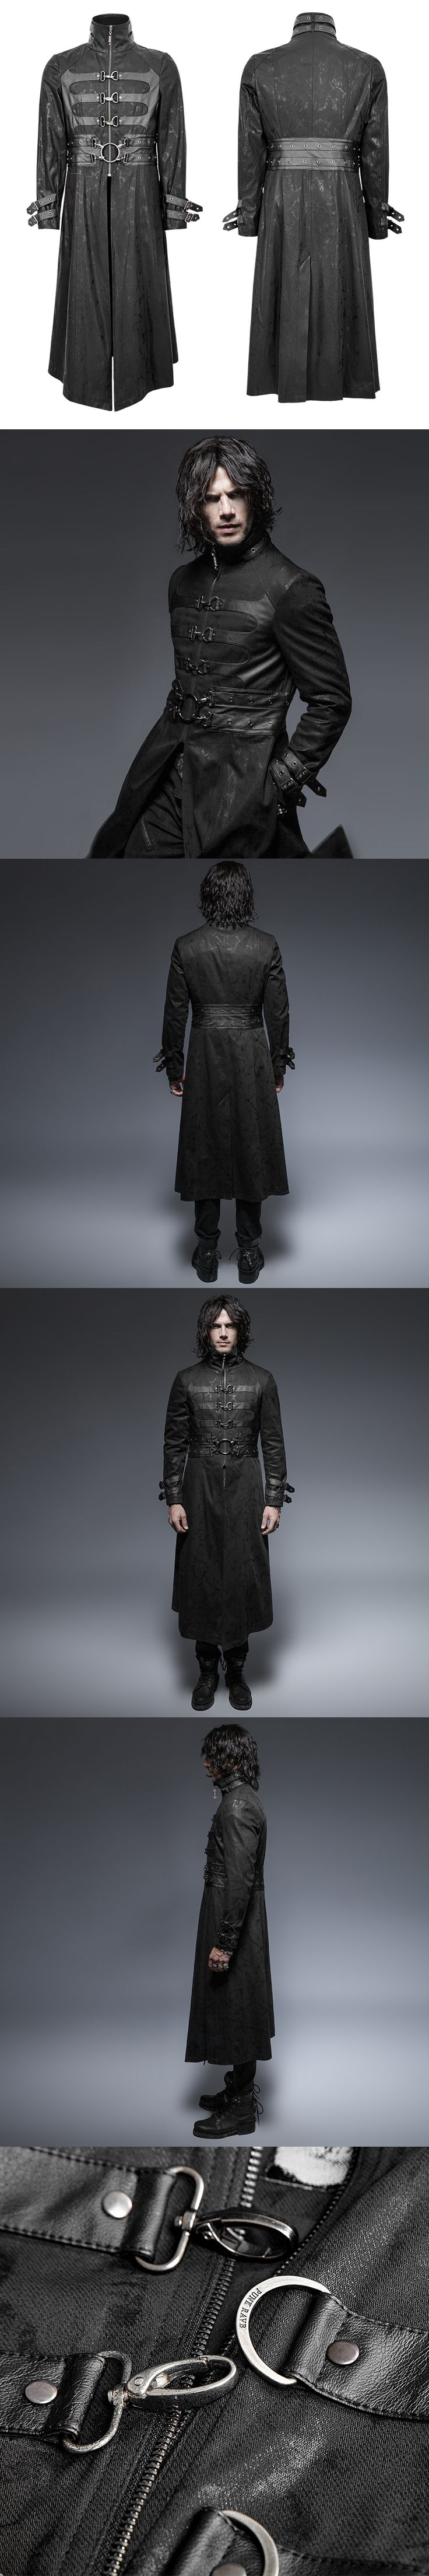 Steampunk Gothic Autumn Winter Stand-Collar Windbreakers Super Handsome Overcoats Punk Killer Buckle Man Outer Long Coats